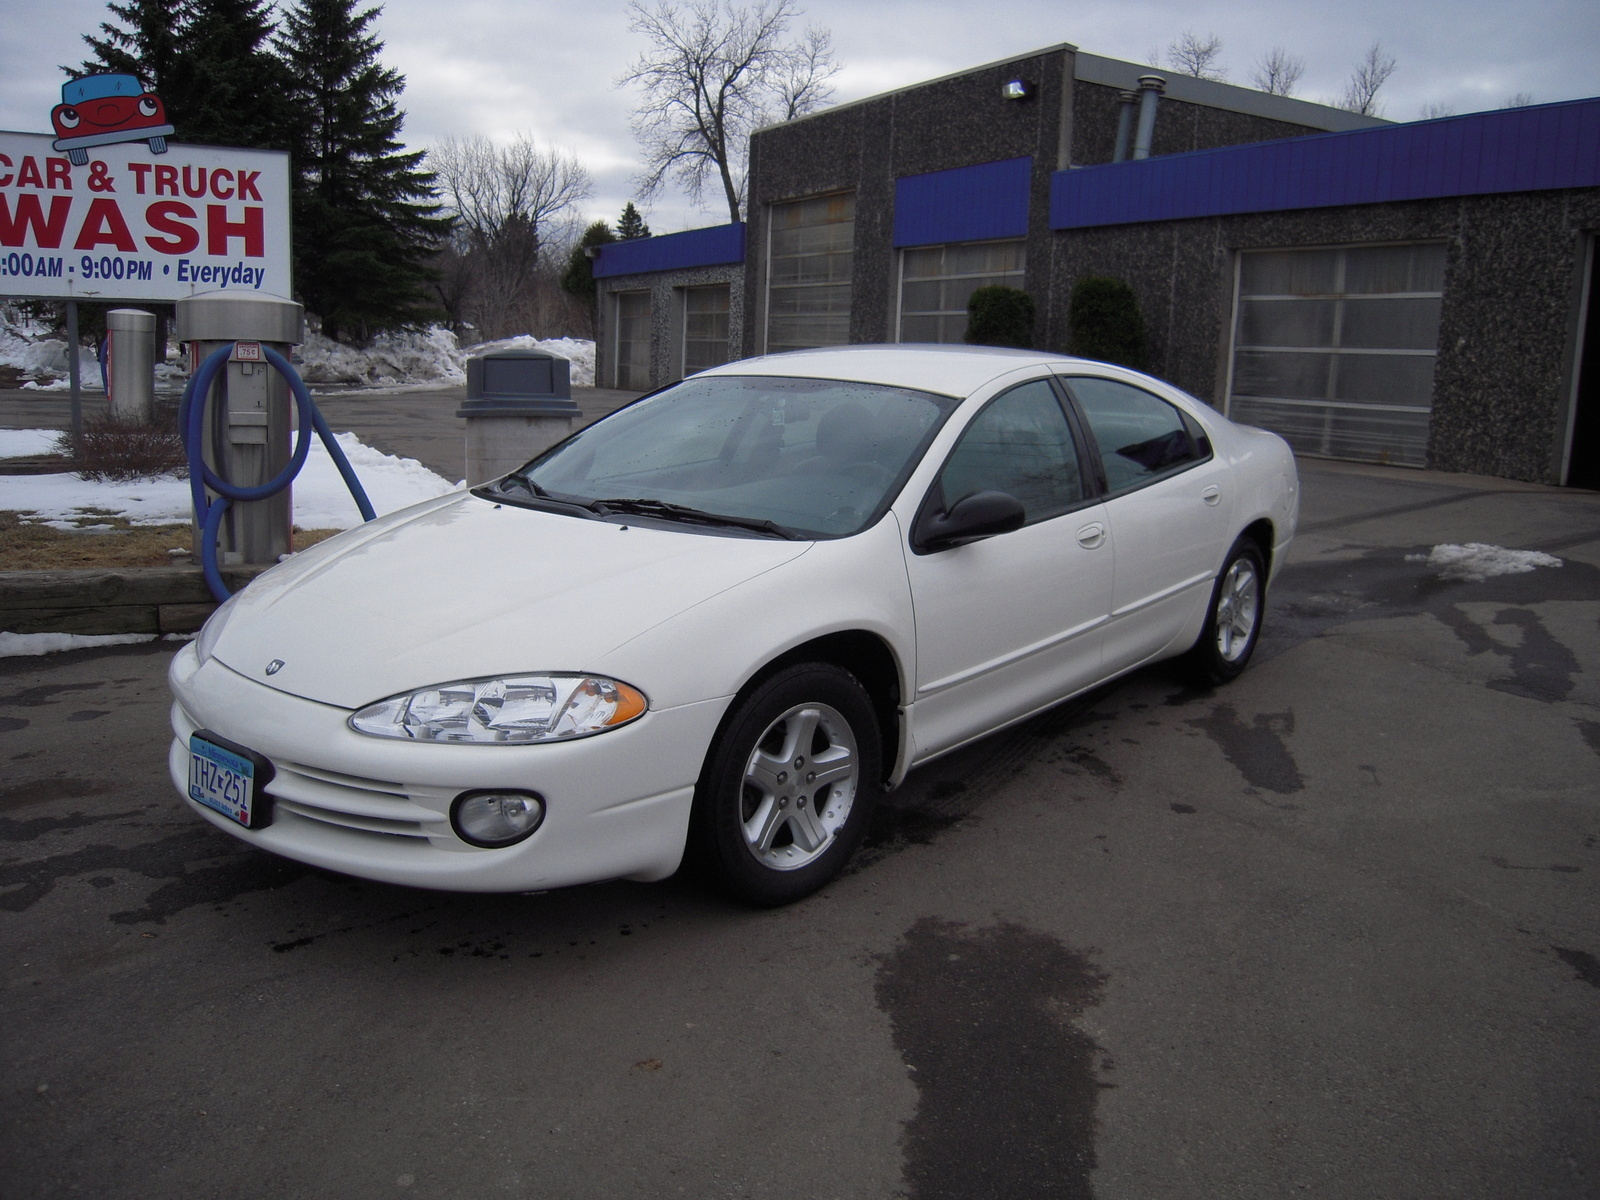 2004 Dodge Intrepid - Overview - CarGurus